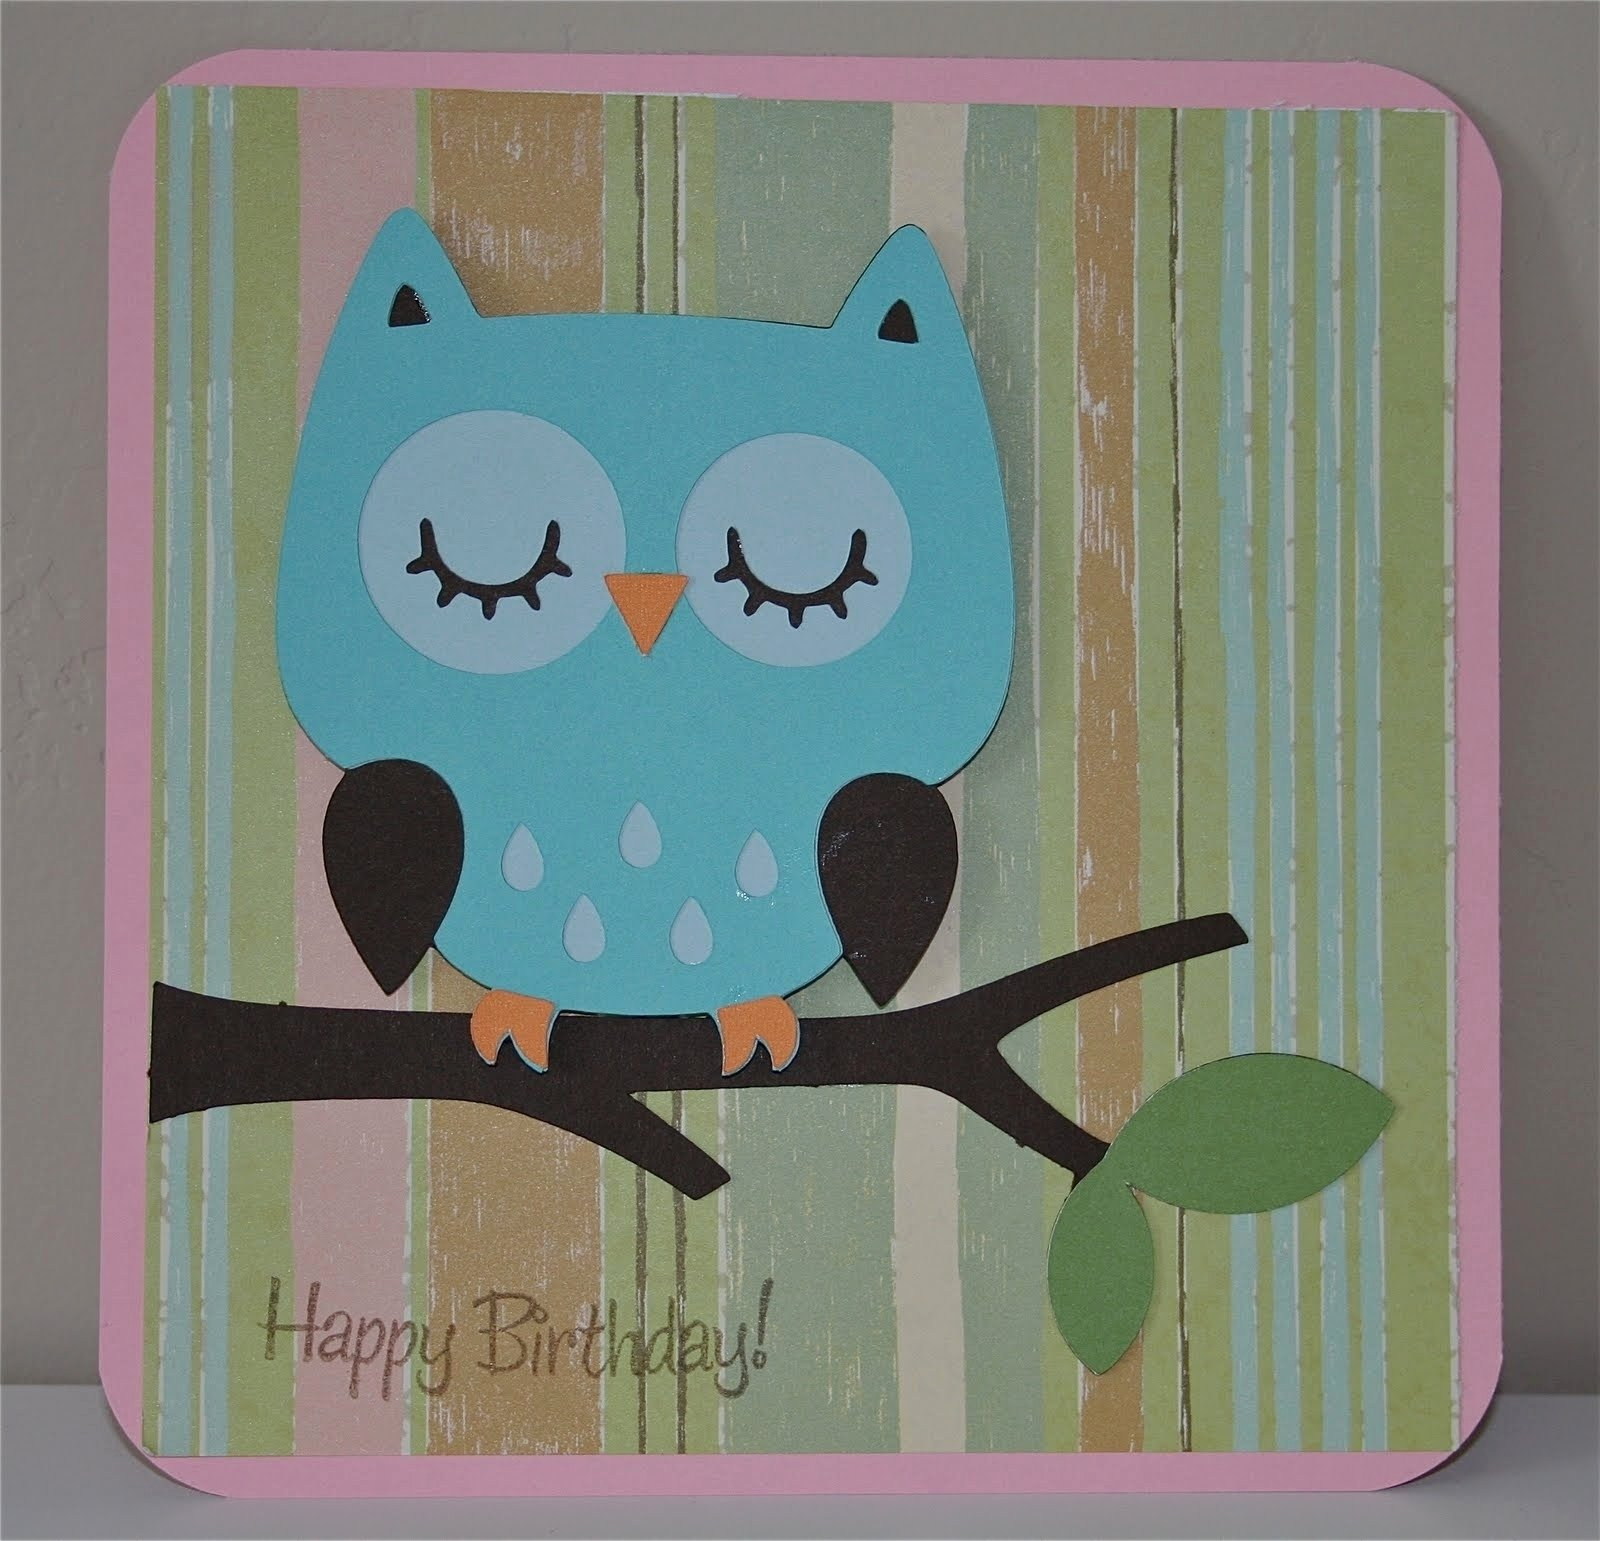 10 gorgeous birthday card ideas for kids 10 gorgeous birthday card ideas for kids handmade birthday card ideas inspirational 87 awesome gallery m4hsunfo